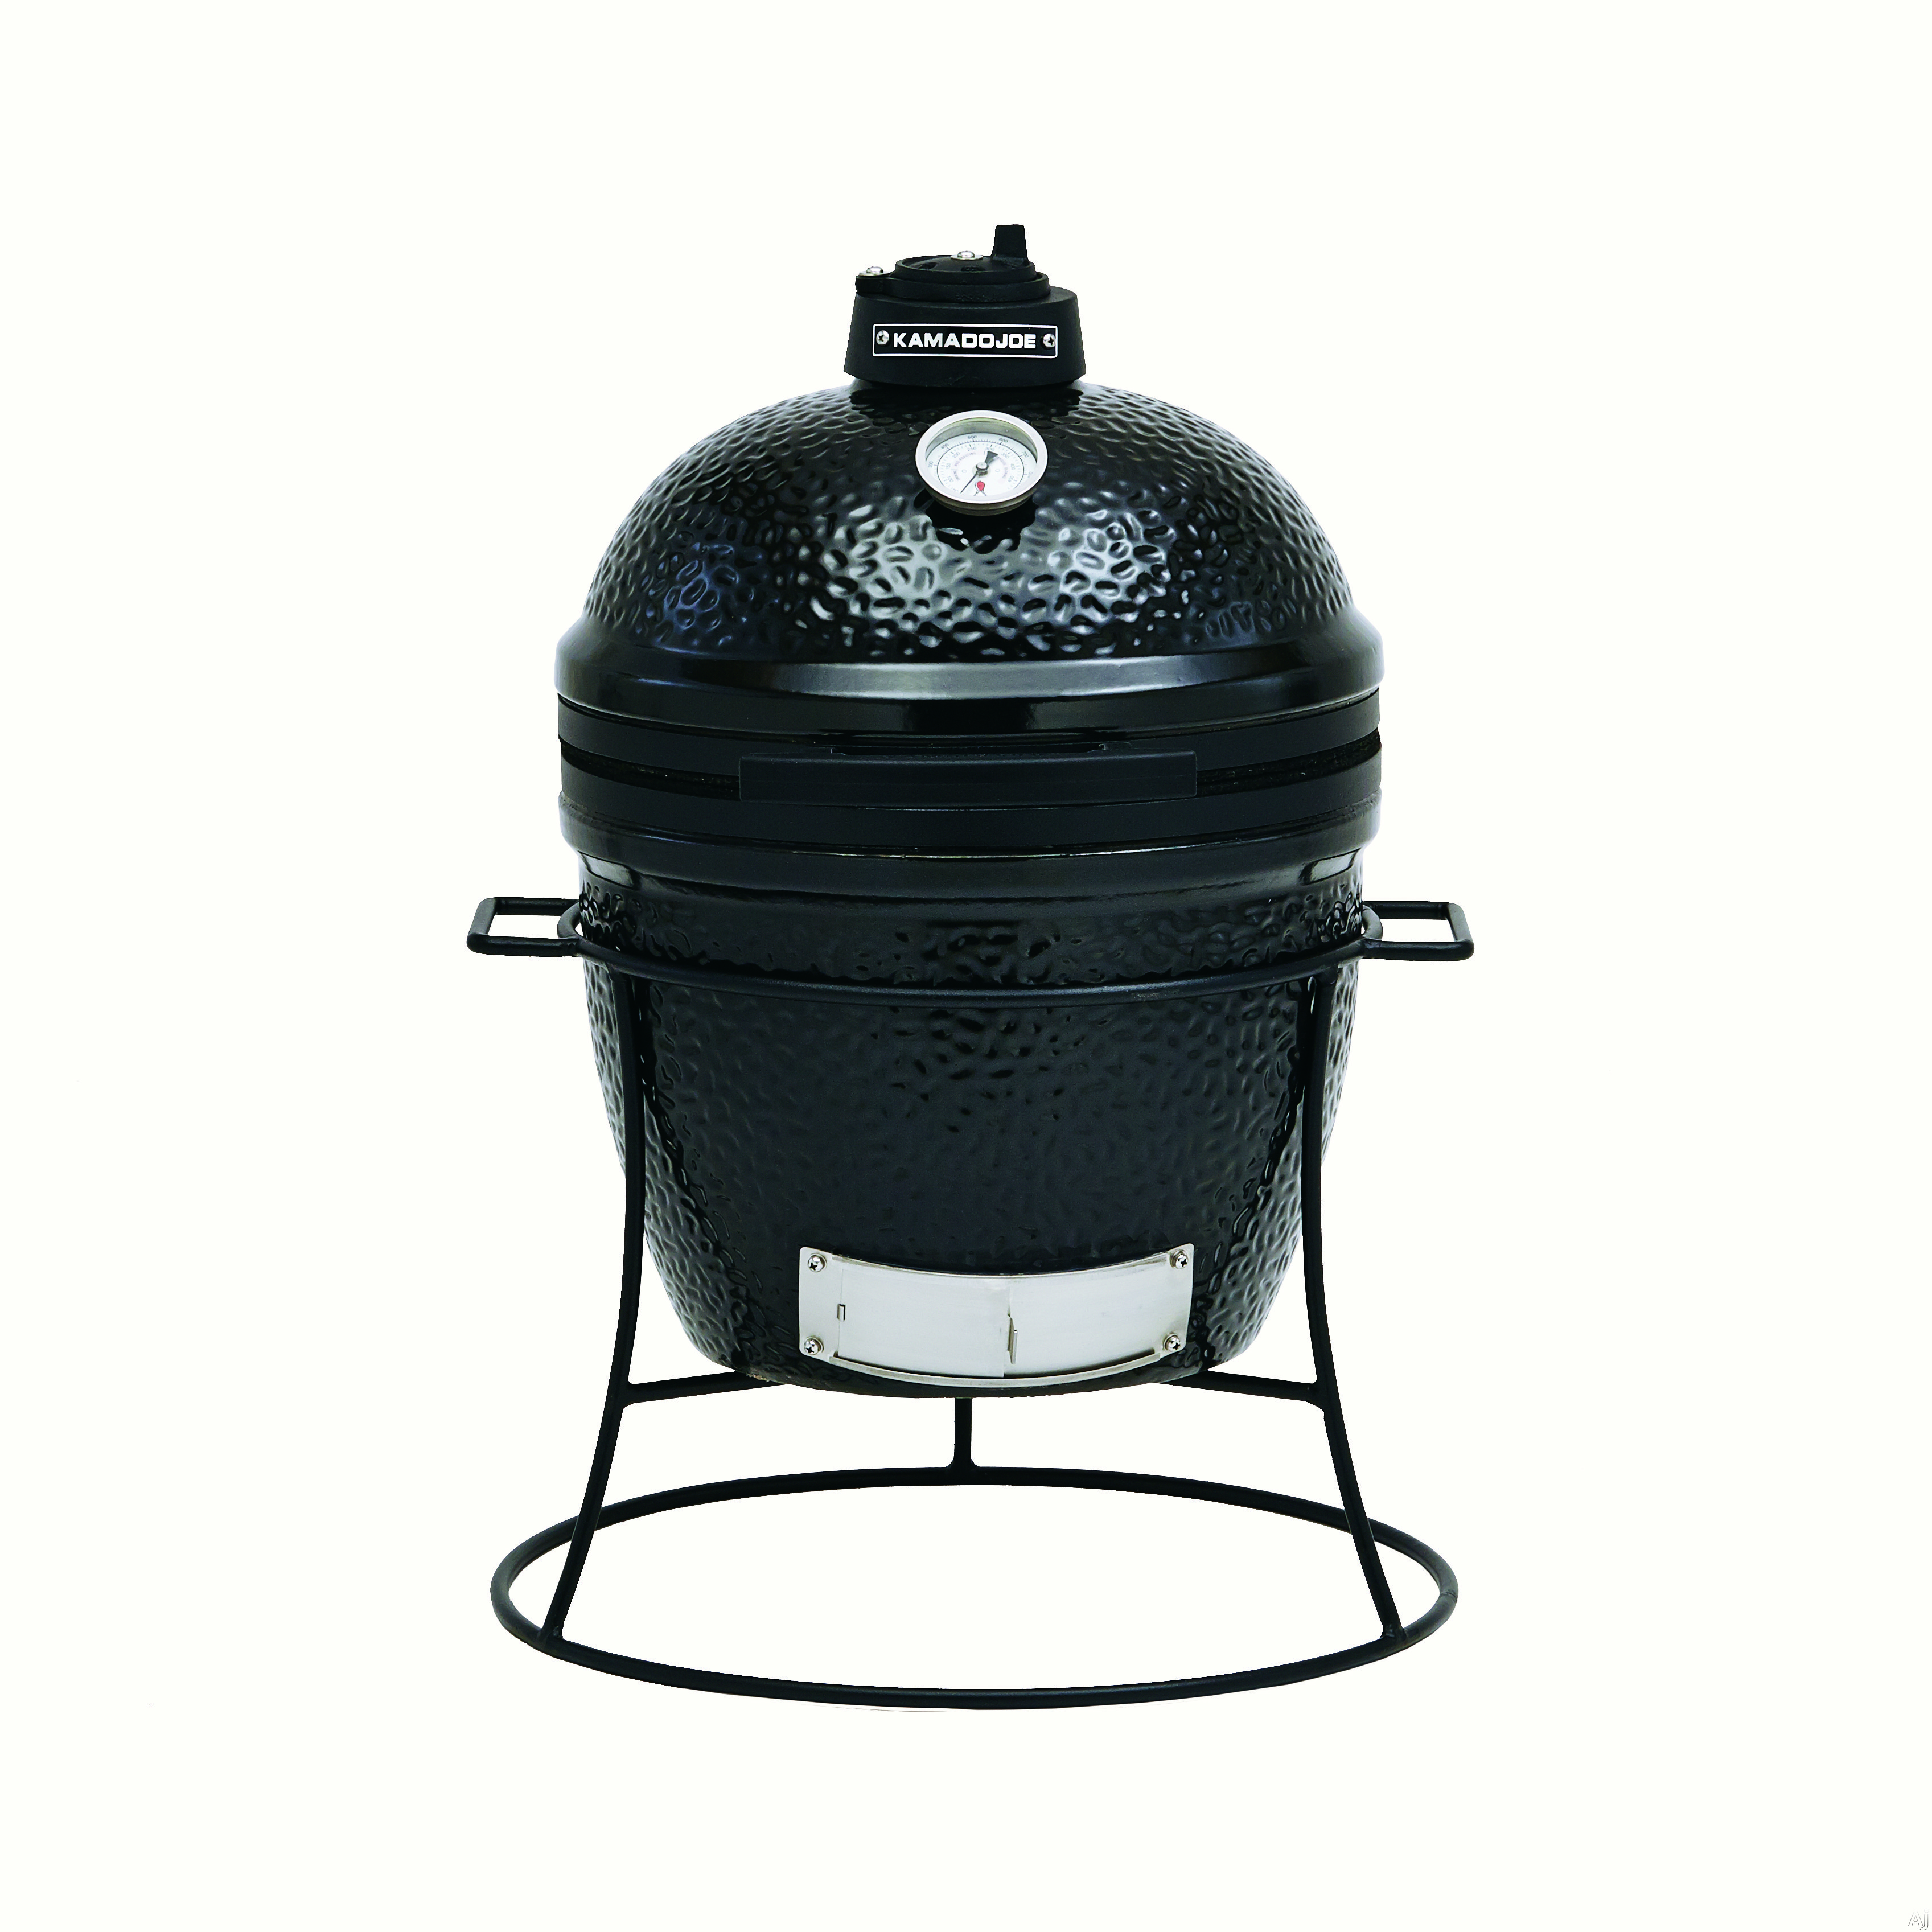 "click for Full Info on this Kamado Joe KJ13BH 13"" Portable Kamado Grill with 148 sq in Cooking Surface  Built in Thermometer  Ceramic Heat Deflector  Grill Gripper and Ash Tool: Black"